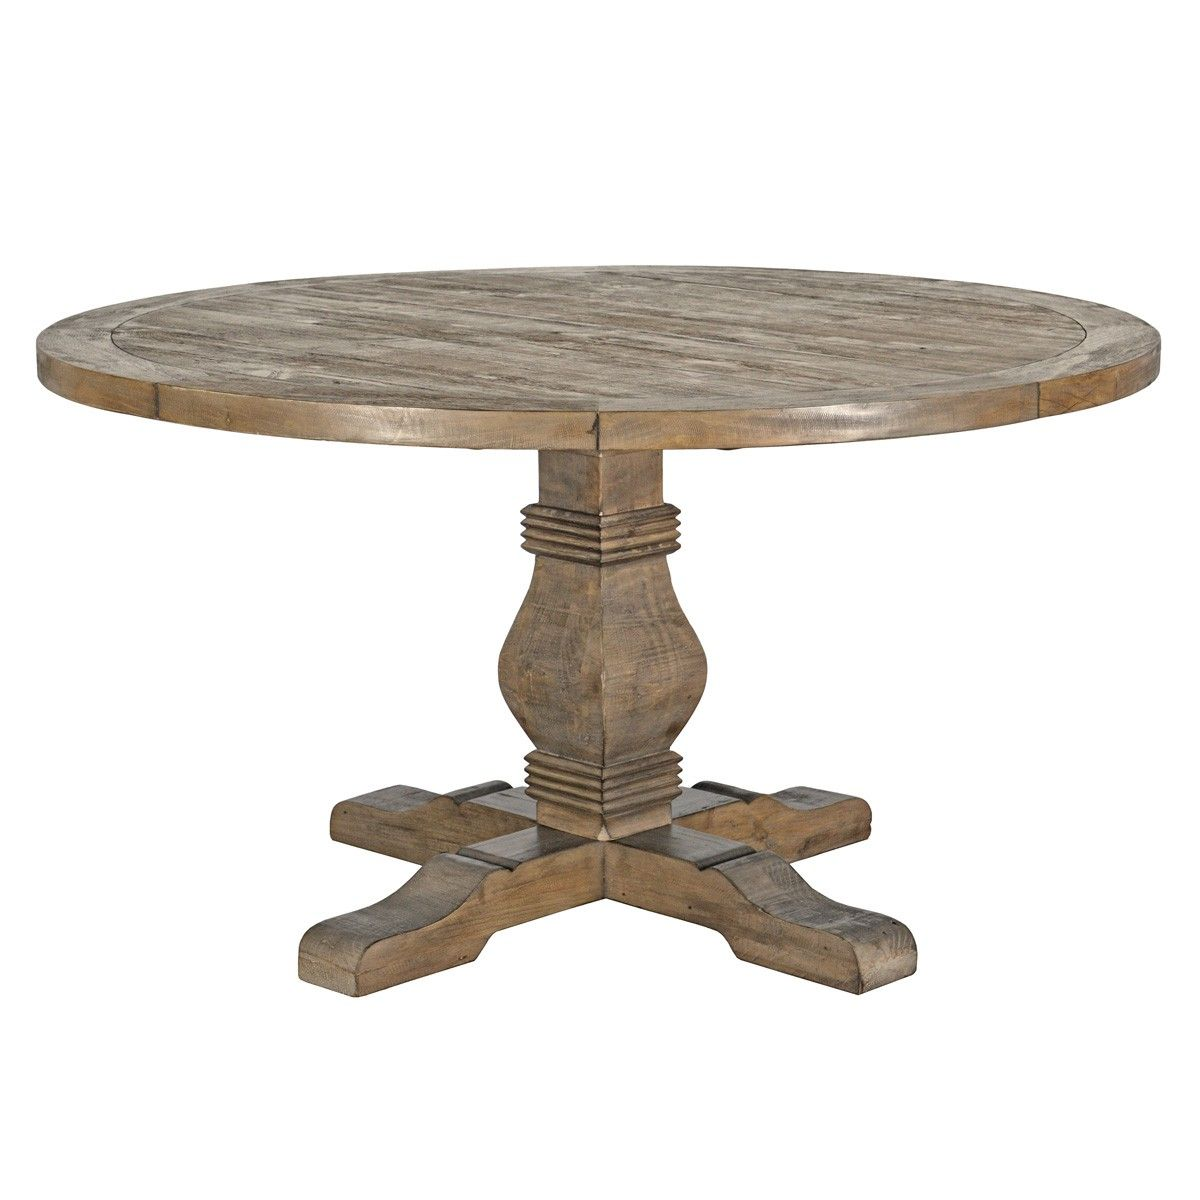 Caleb rnd dining tbl desert dining tables furniture products handcrafted sustainable